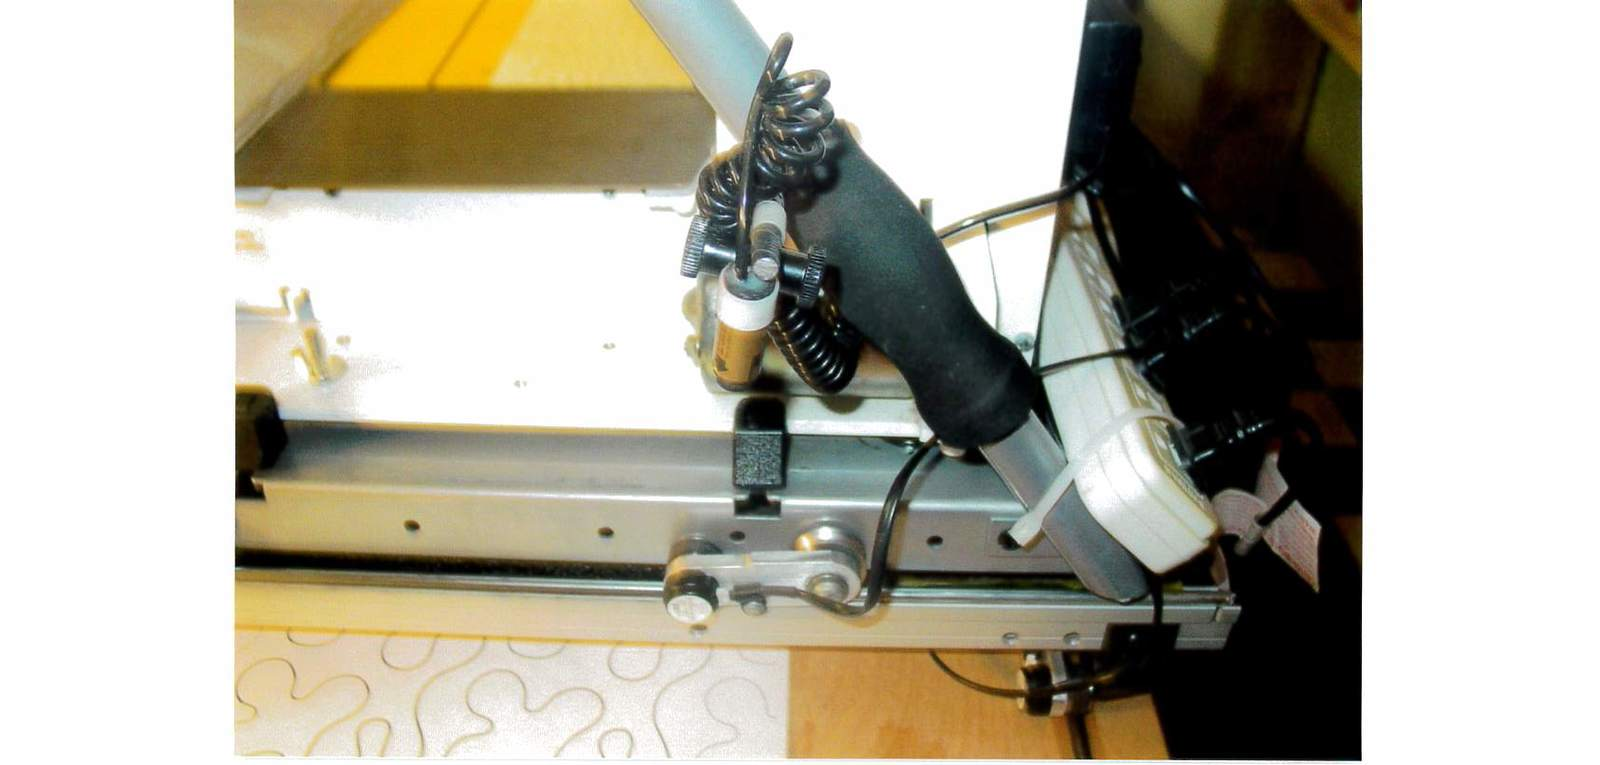 Bailey Home Quilter For Sale - For Sale - Used Quilting Machines ... : bailey quilting machine for sale - Adamdwight.com